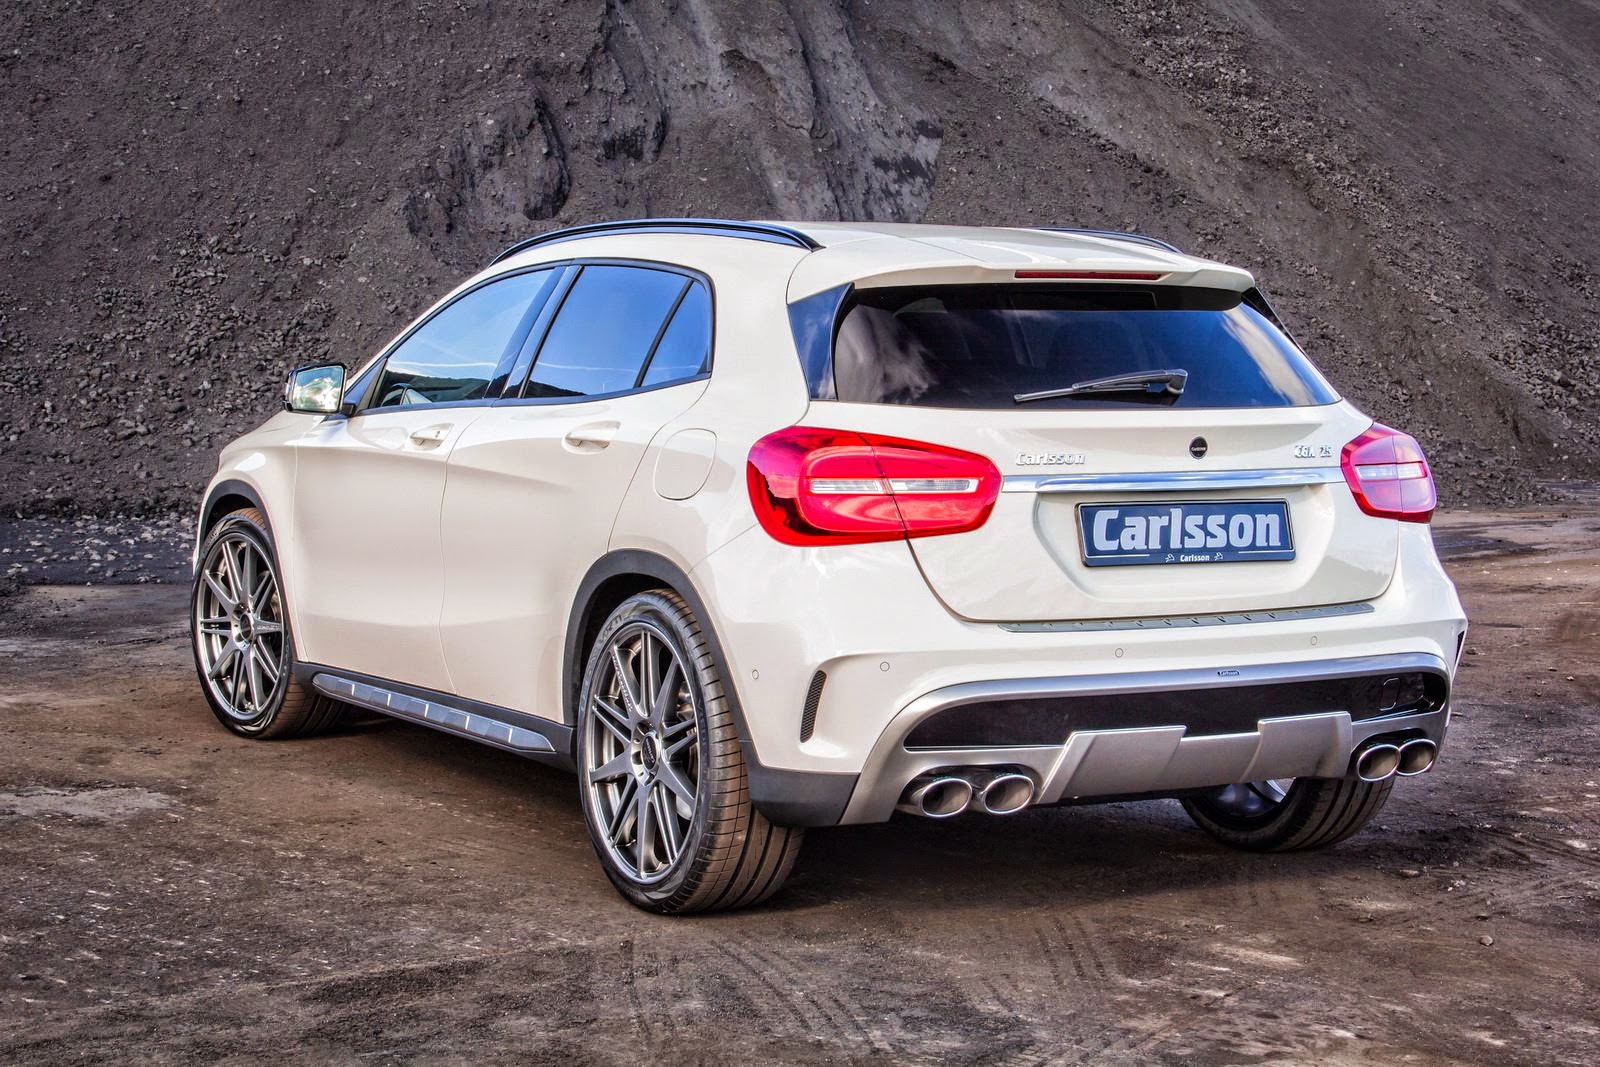 mercedes benz x156 gla class tuned by carlsson benztuning. Black Bedroom Furniture Sets. Home Design Ideas